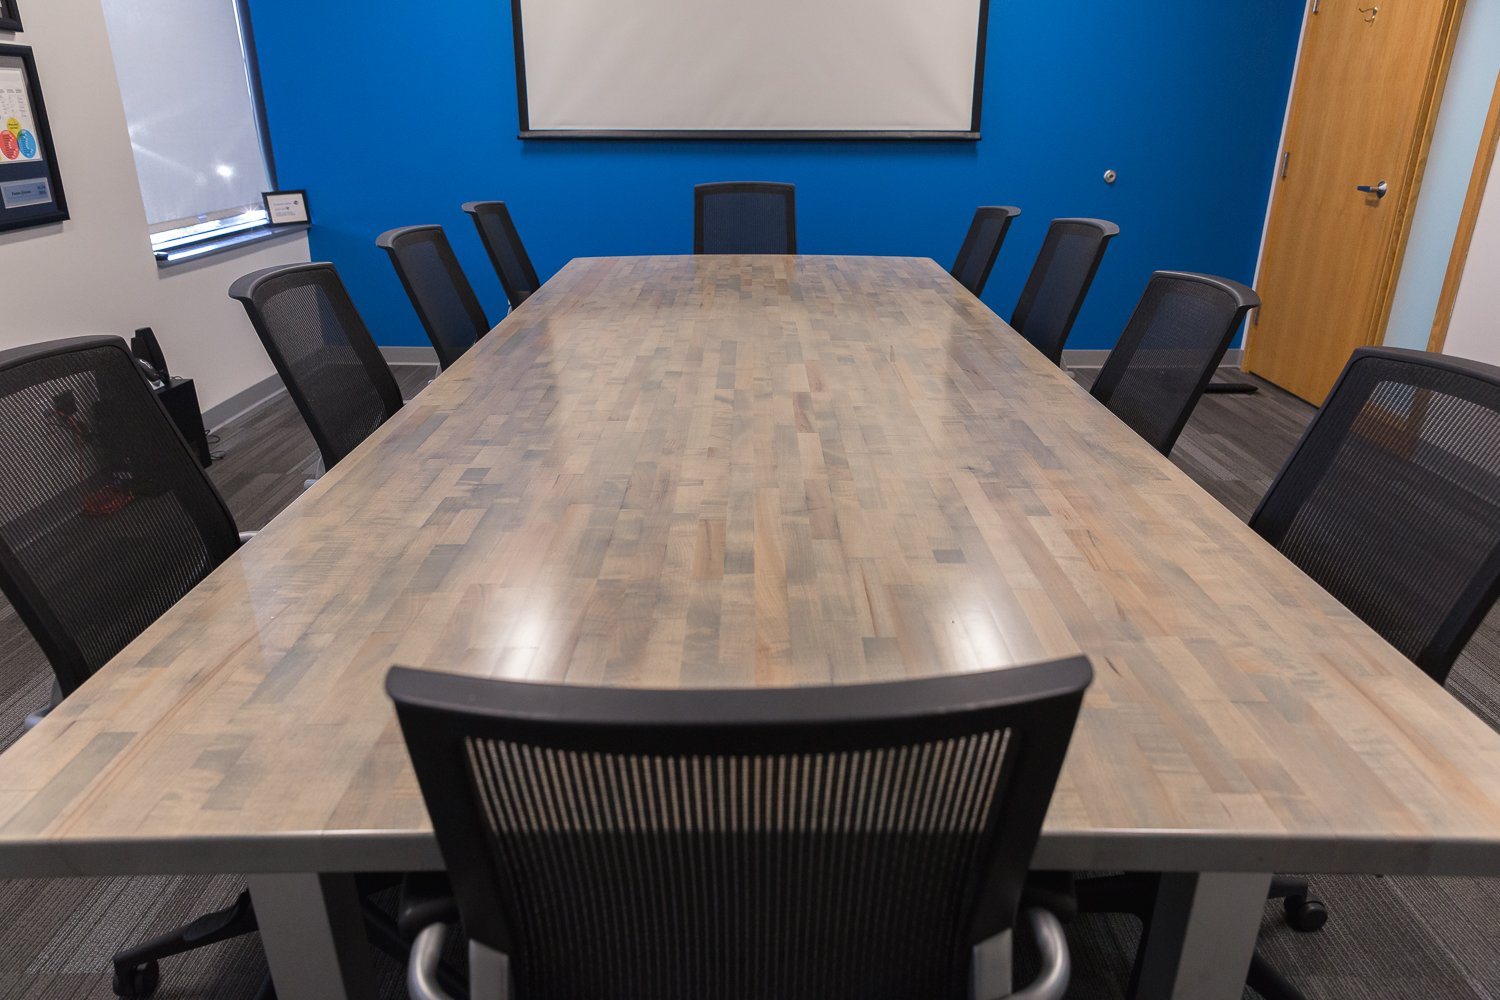 Furniture Refinishing – The Giant Conference Table!!